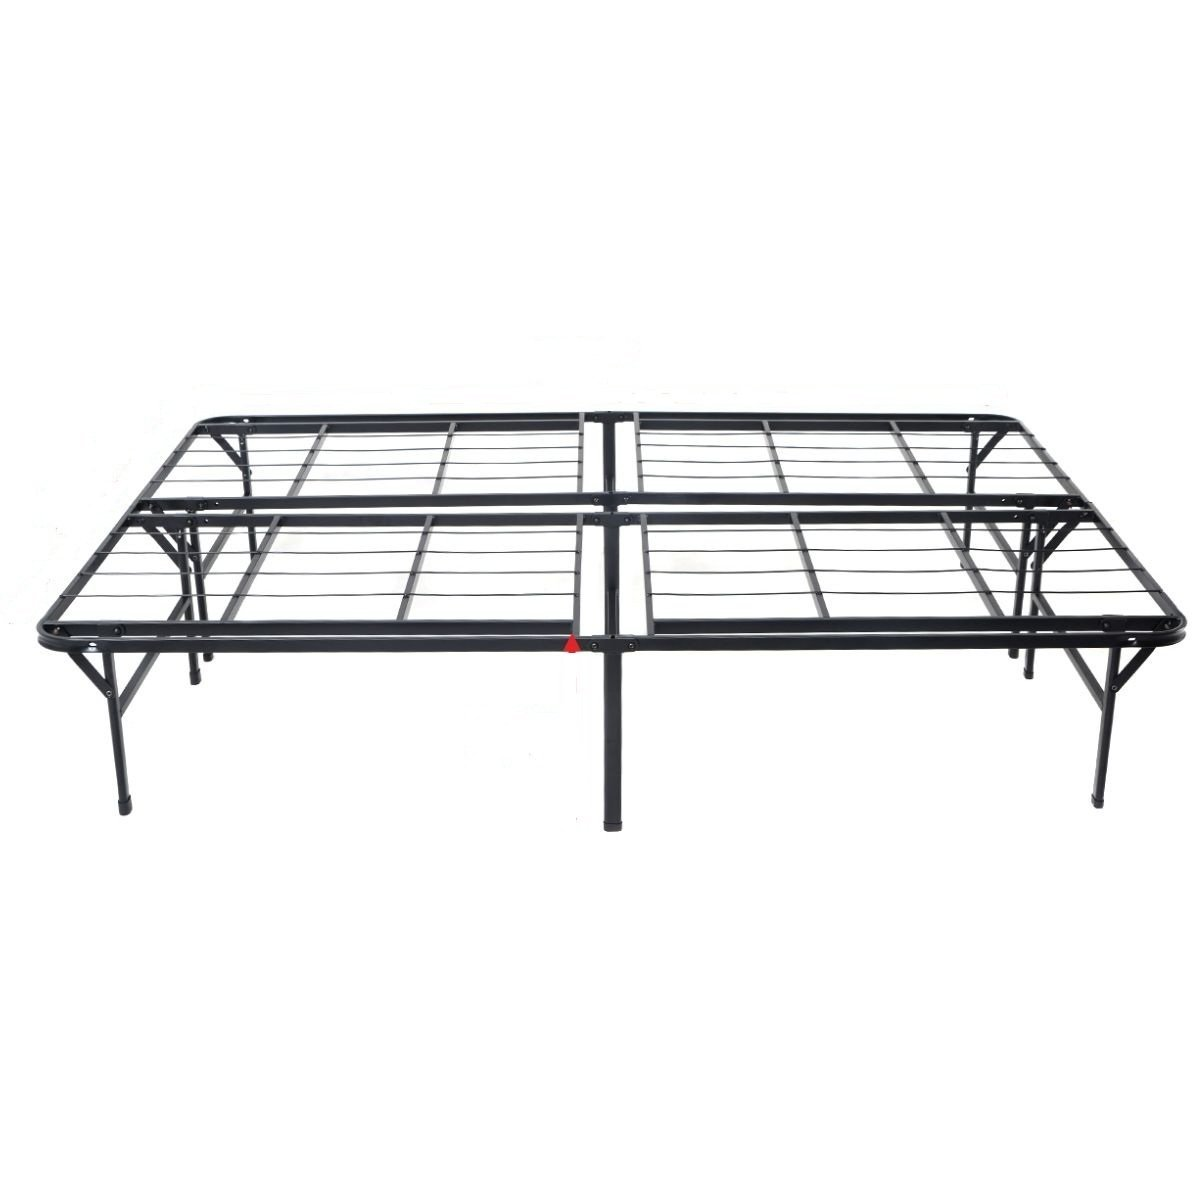 Cheap Folding Air Bed Frame, find Folding Air Bed Frame deals on ...